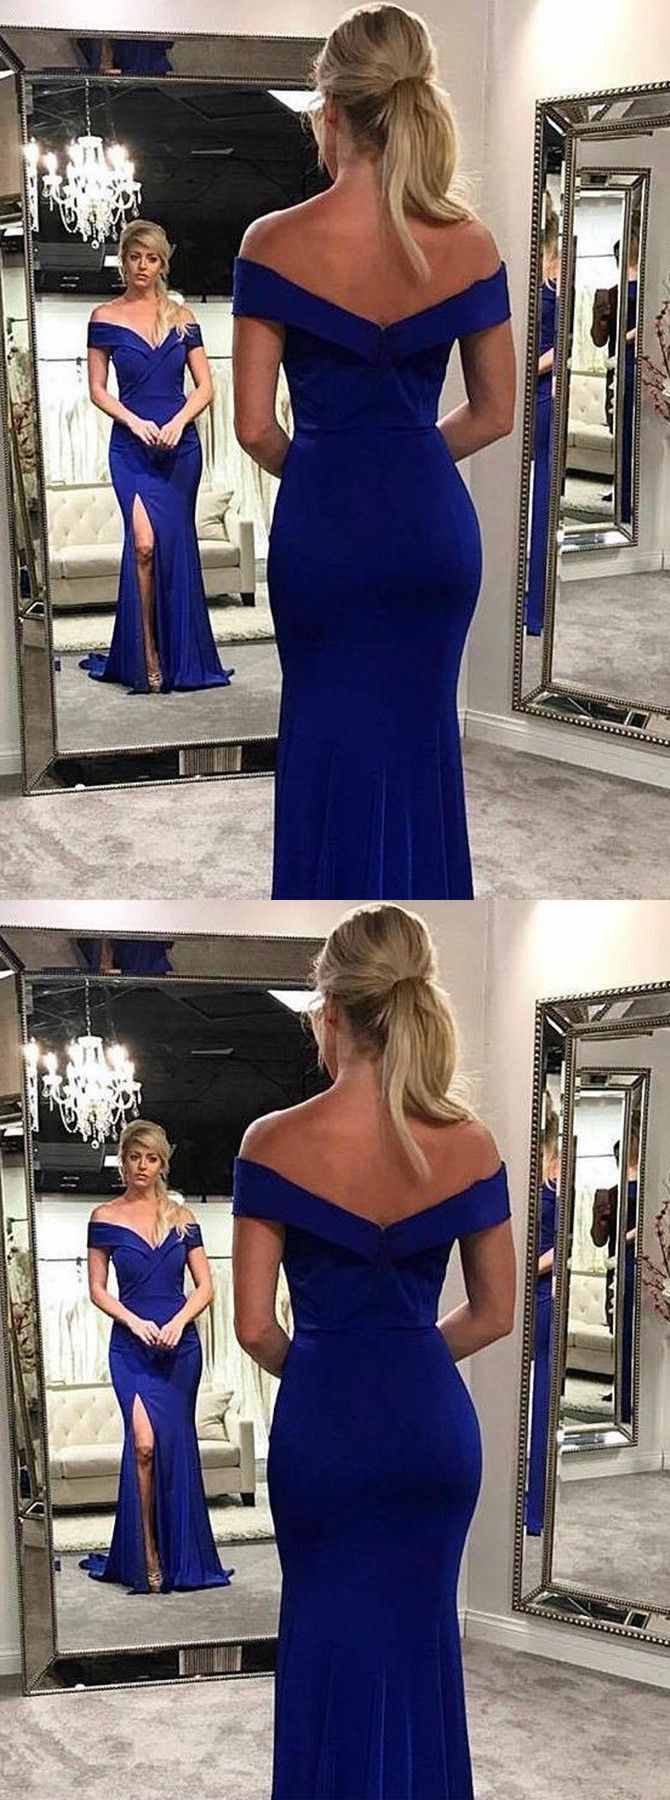 Mermaid offtheshoulder royal blue elastic satin prom dress with